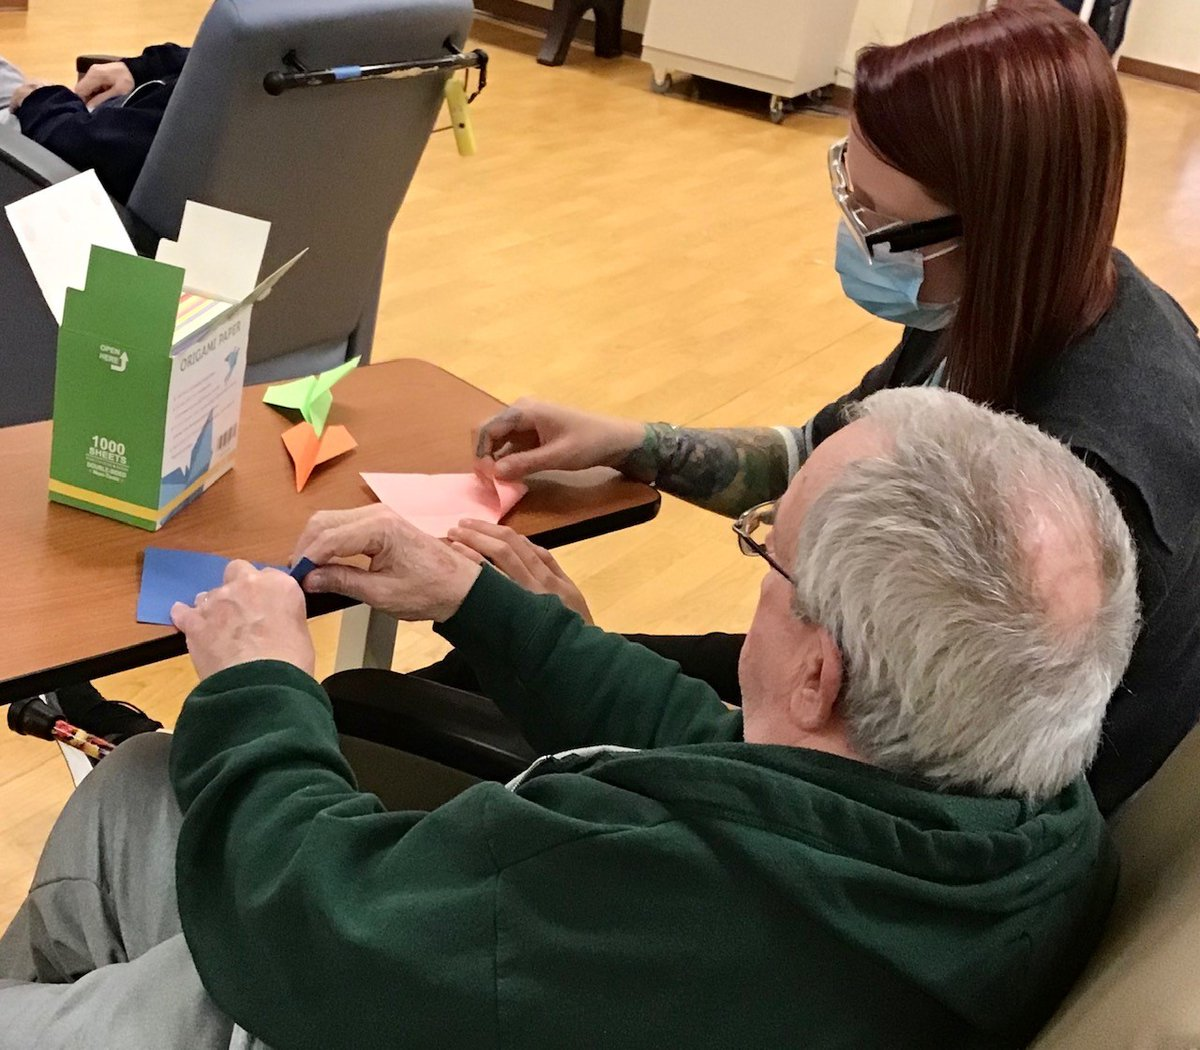 The recreation staff at the Soldiers' Home in Holyoke has been doing paper folding, or origami, with our veterans. This simple activity can help increase creativity, relaxation, cerebral activation, and joy! https://t.co/ktl72UckyI